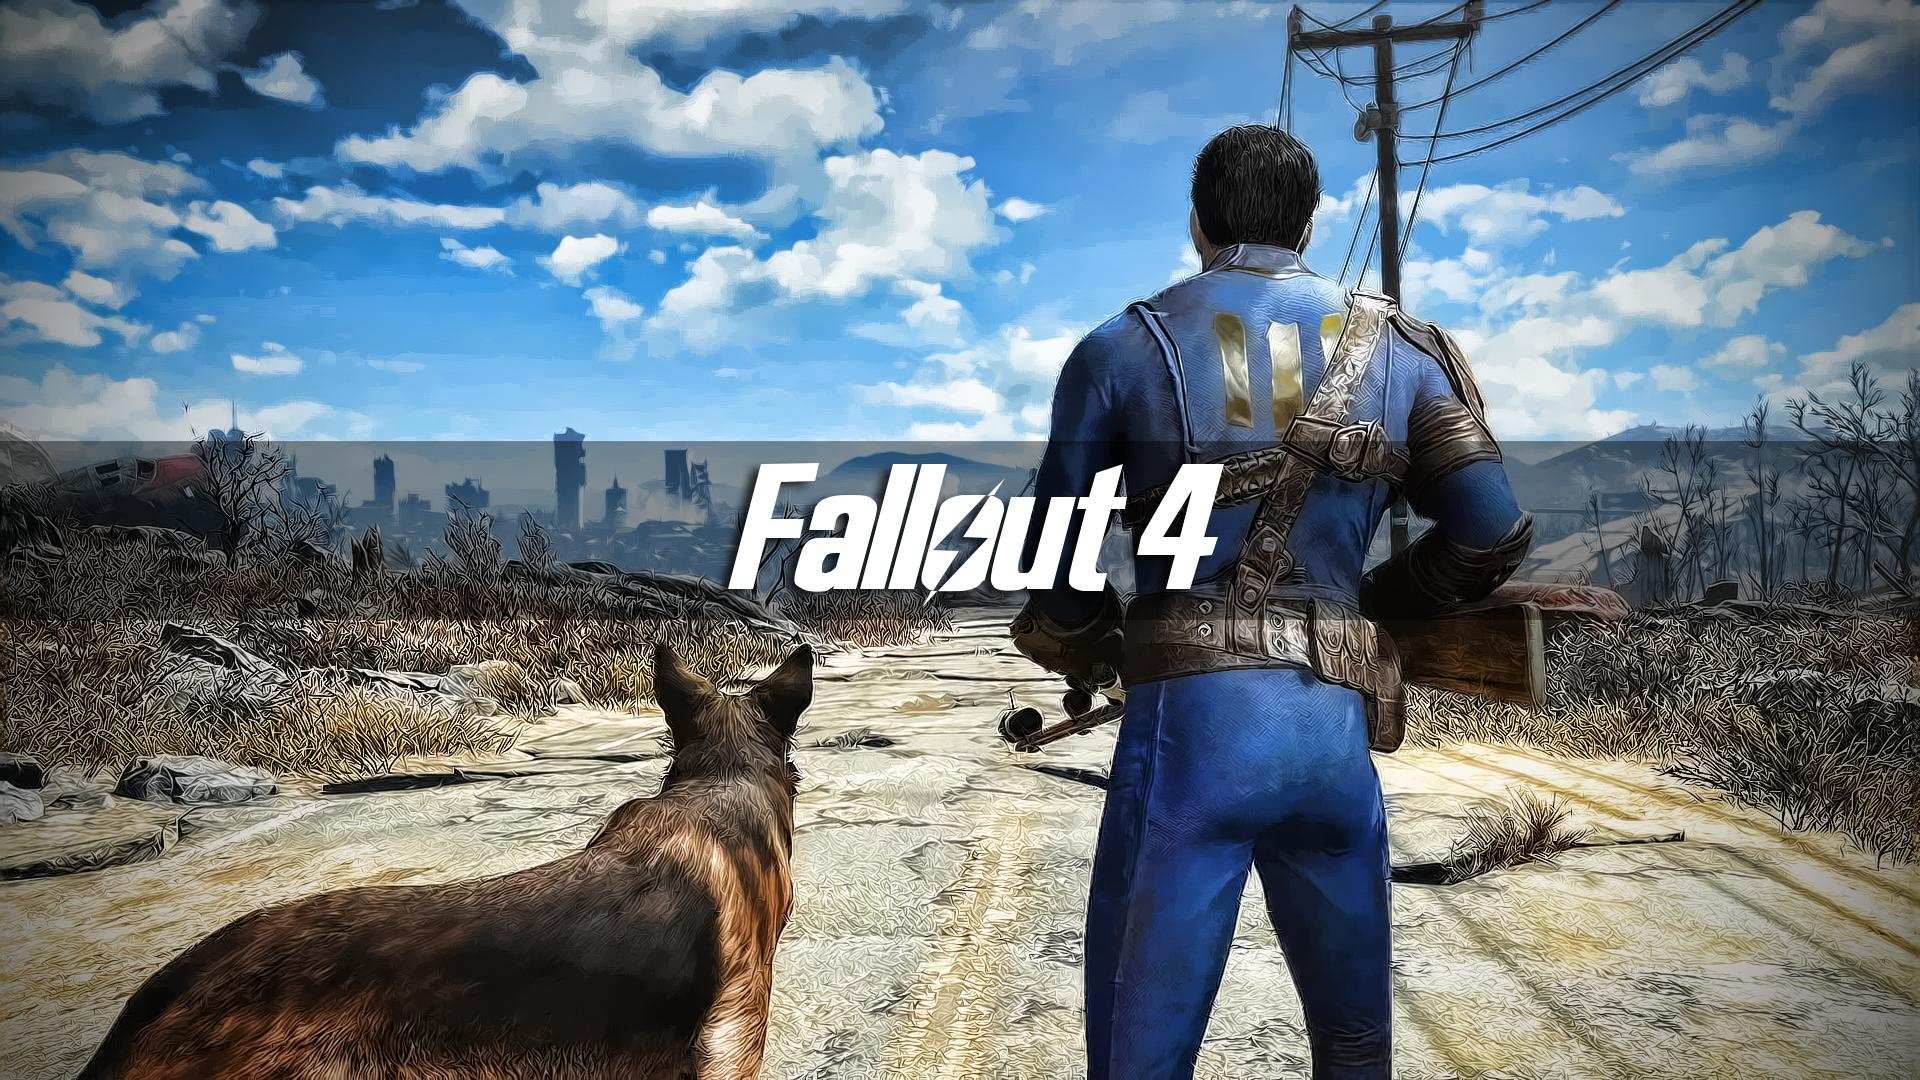 Download Fallout 4 Game